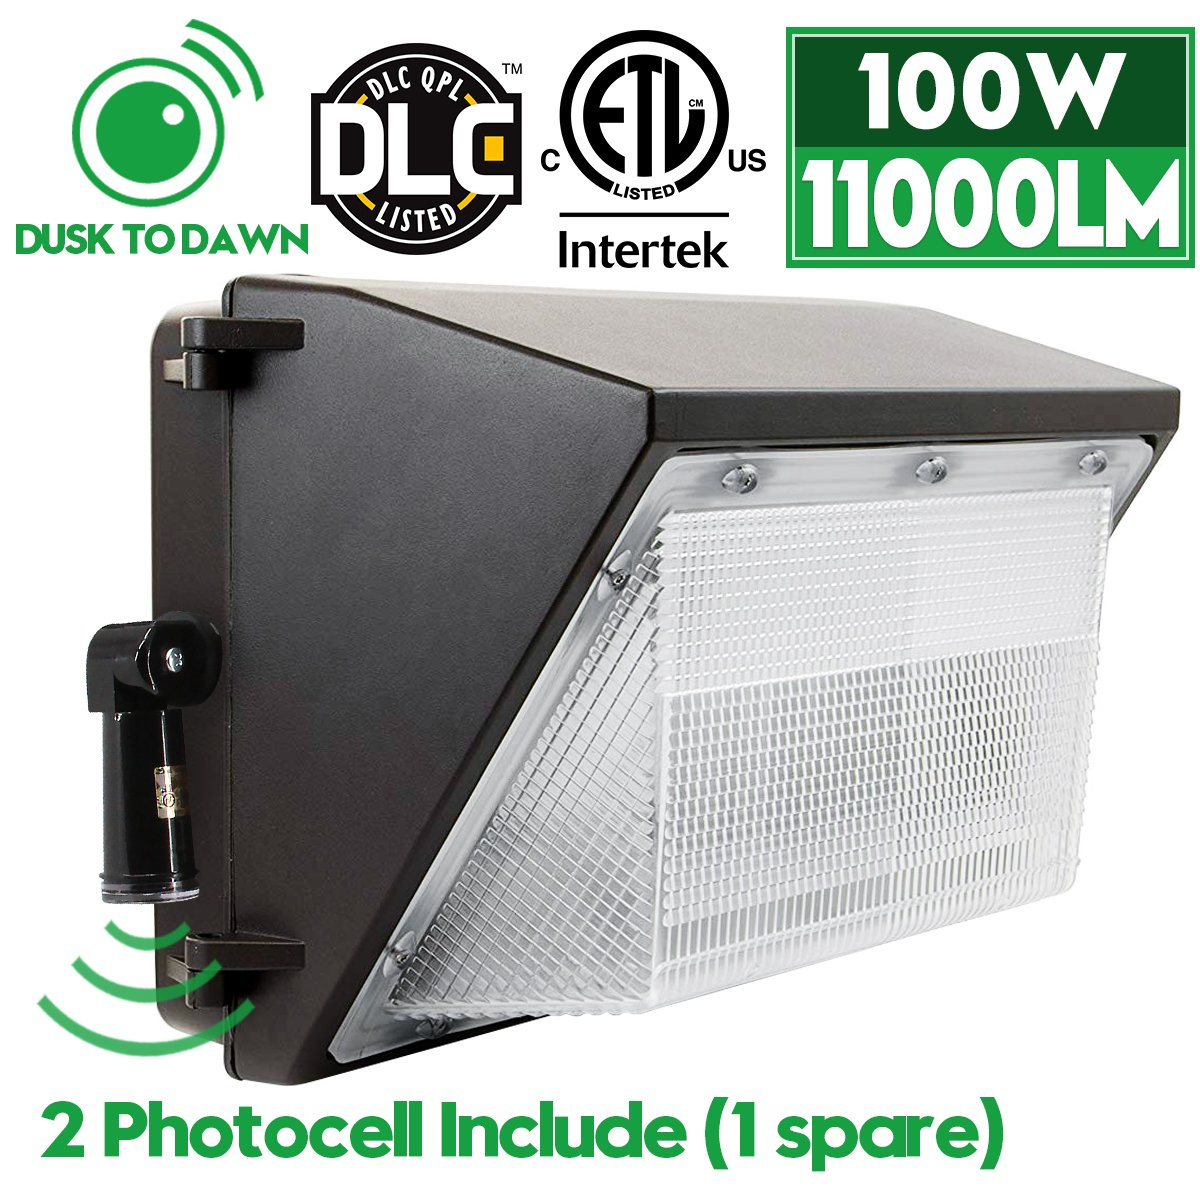 LED Wall Pack Lights with 2 Photocell, 100W Outdoor Security Area Lighting, Dusk to Dawn, 5000K Daylight White, 11000Lumen, IP65 Waterproof, Commercial Grade Flood Light